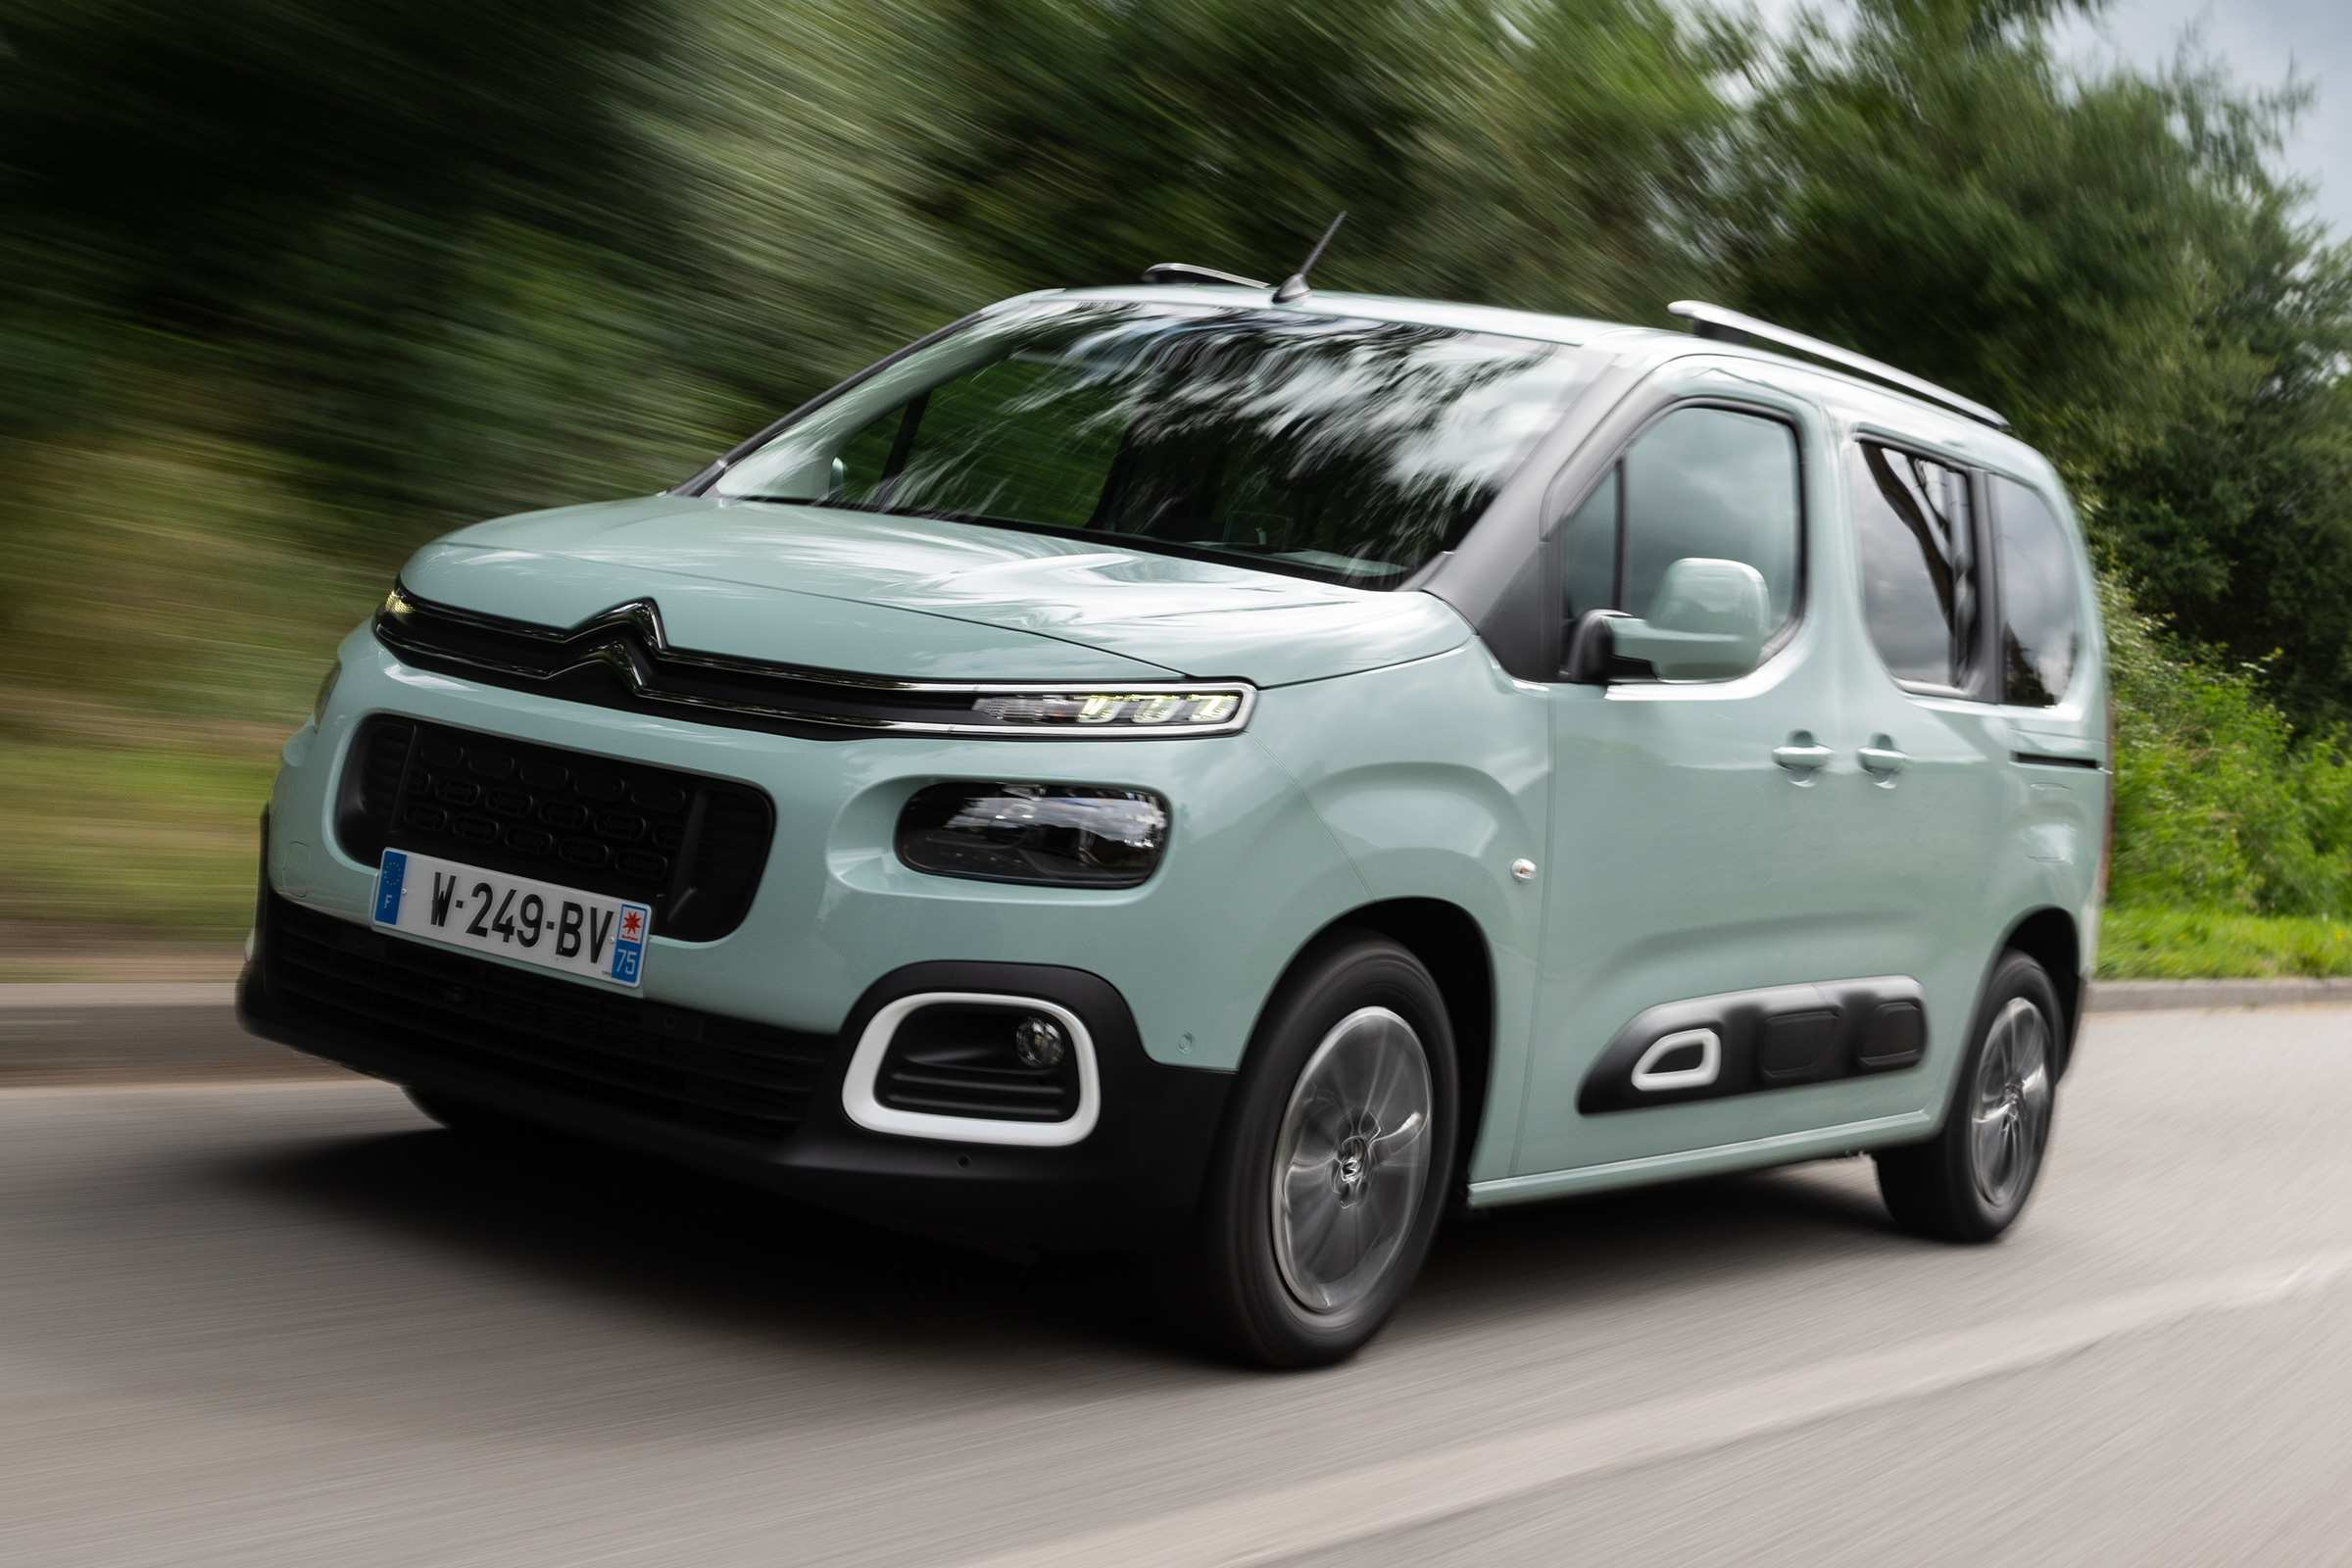 87 Concept of 2019 Citroen Berlingo Spy Shoot for 2019 Citroen Berlingo